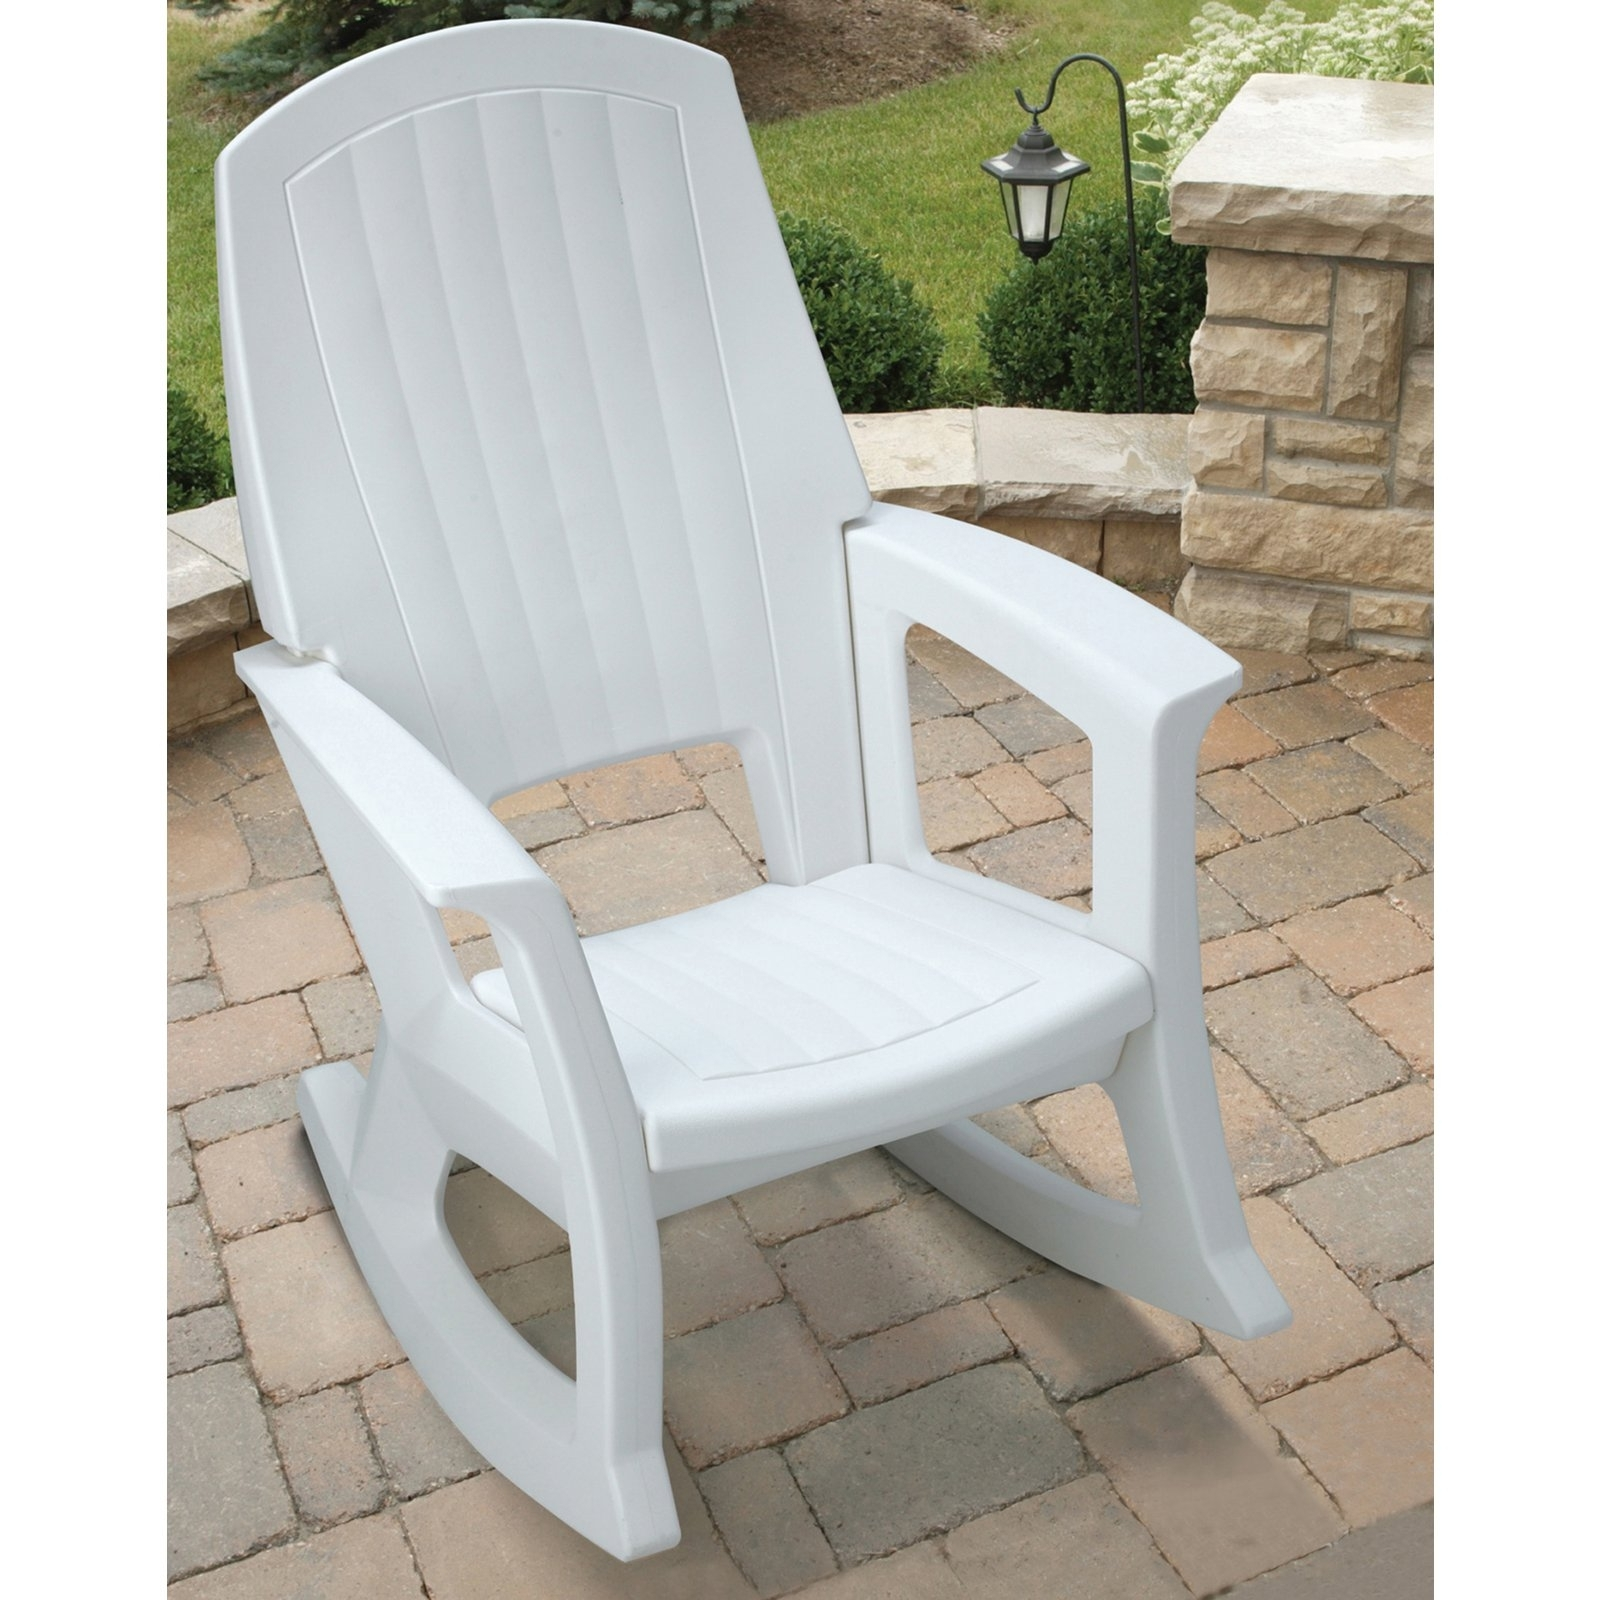 Well Liked Semco Recycled Plastic Rocking Chair – Walmart For Resin Patio Rocking Chairs (View 2 of 15)